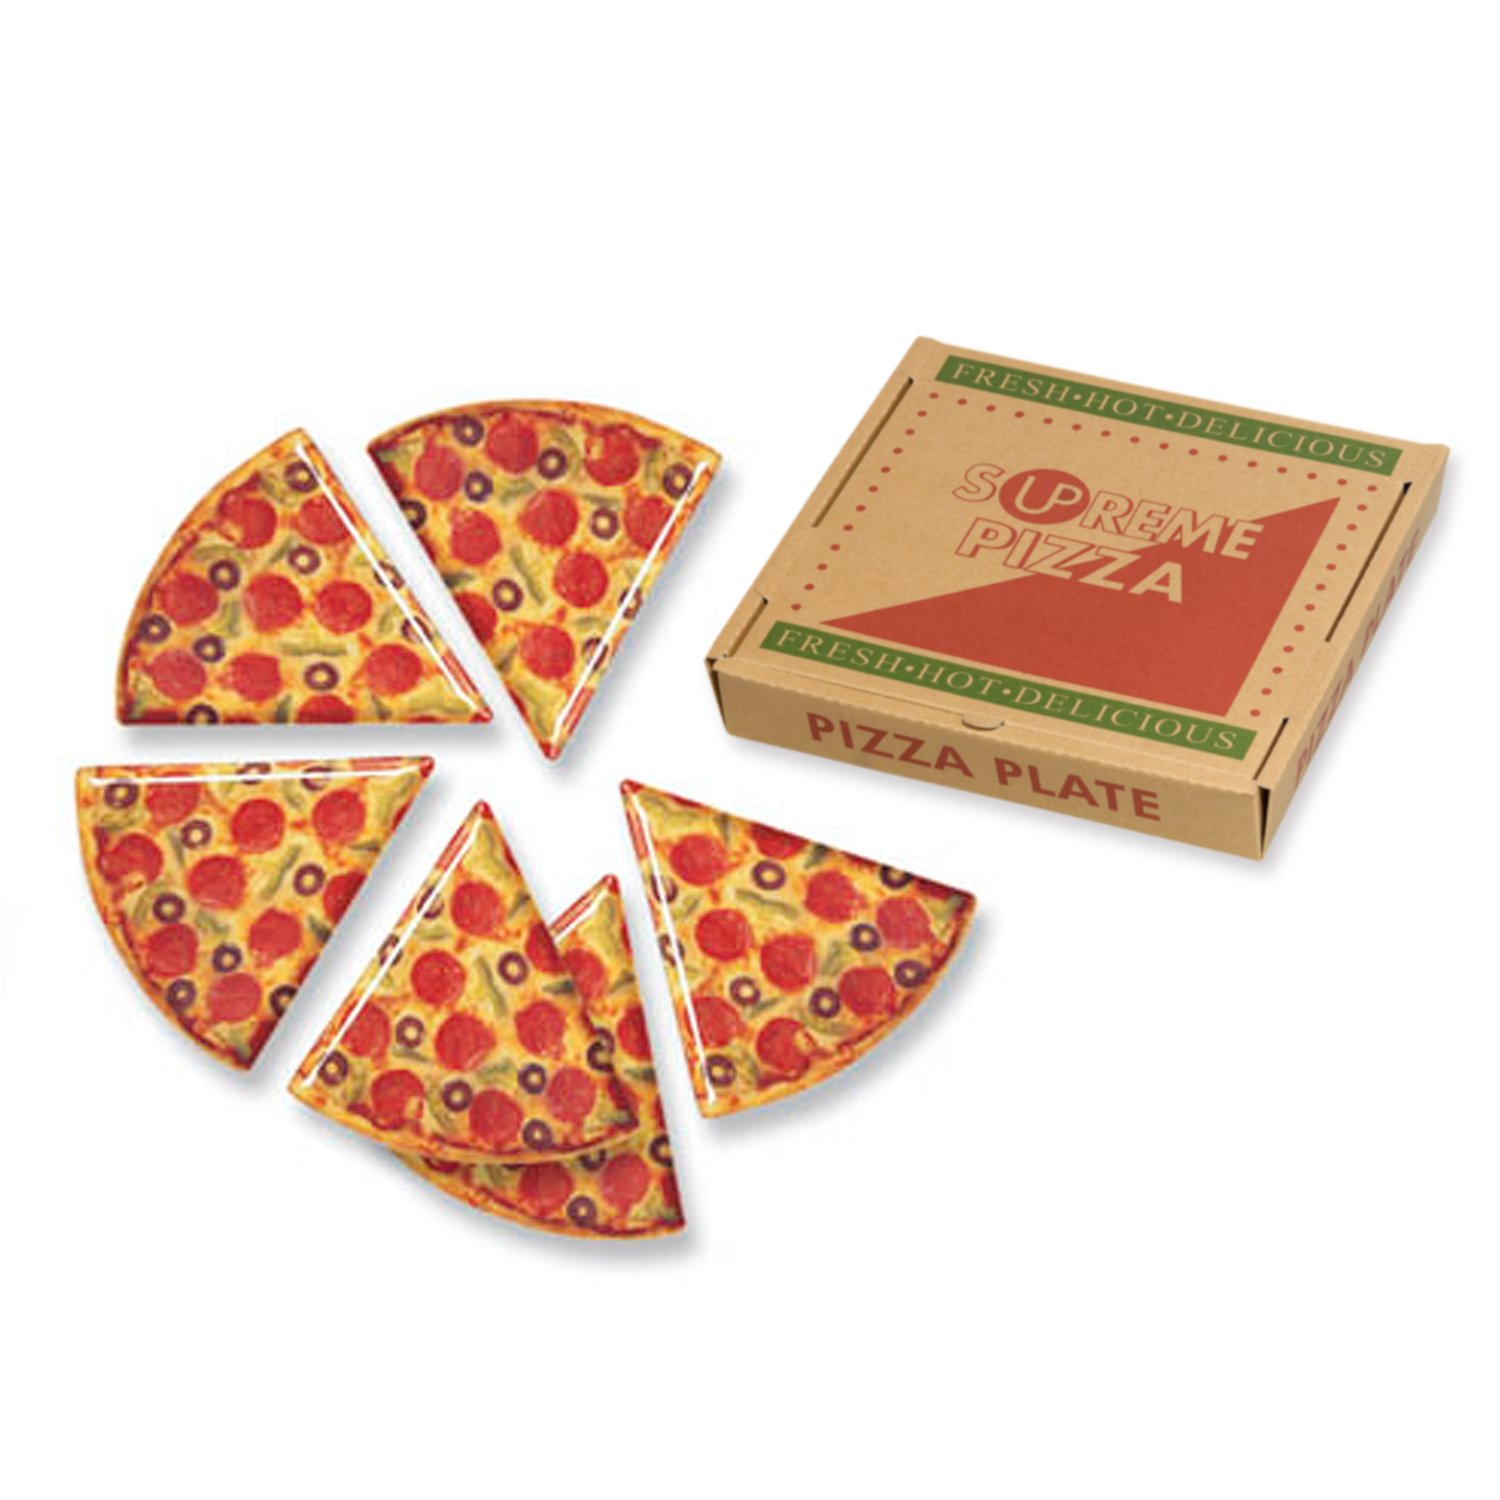 Fun pizza plates